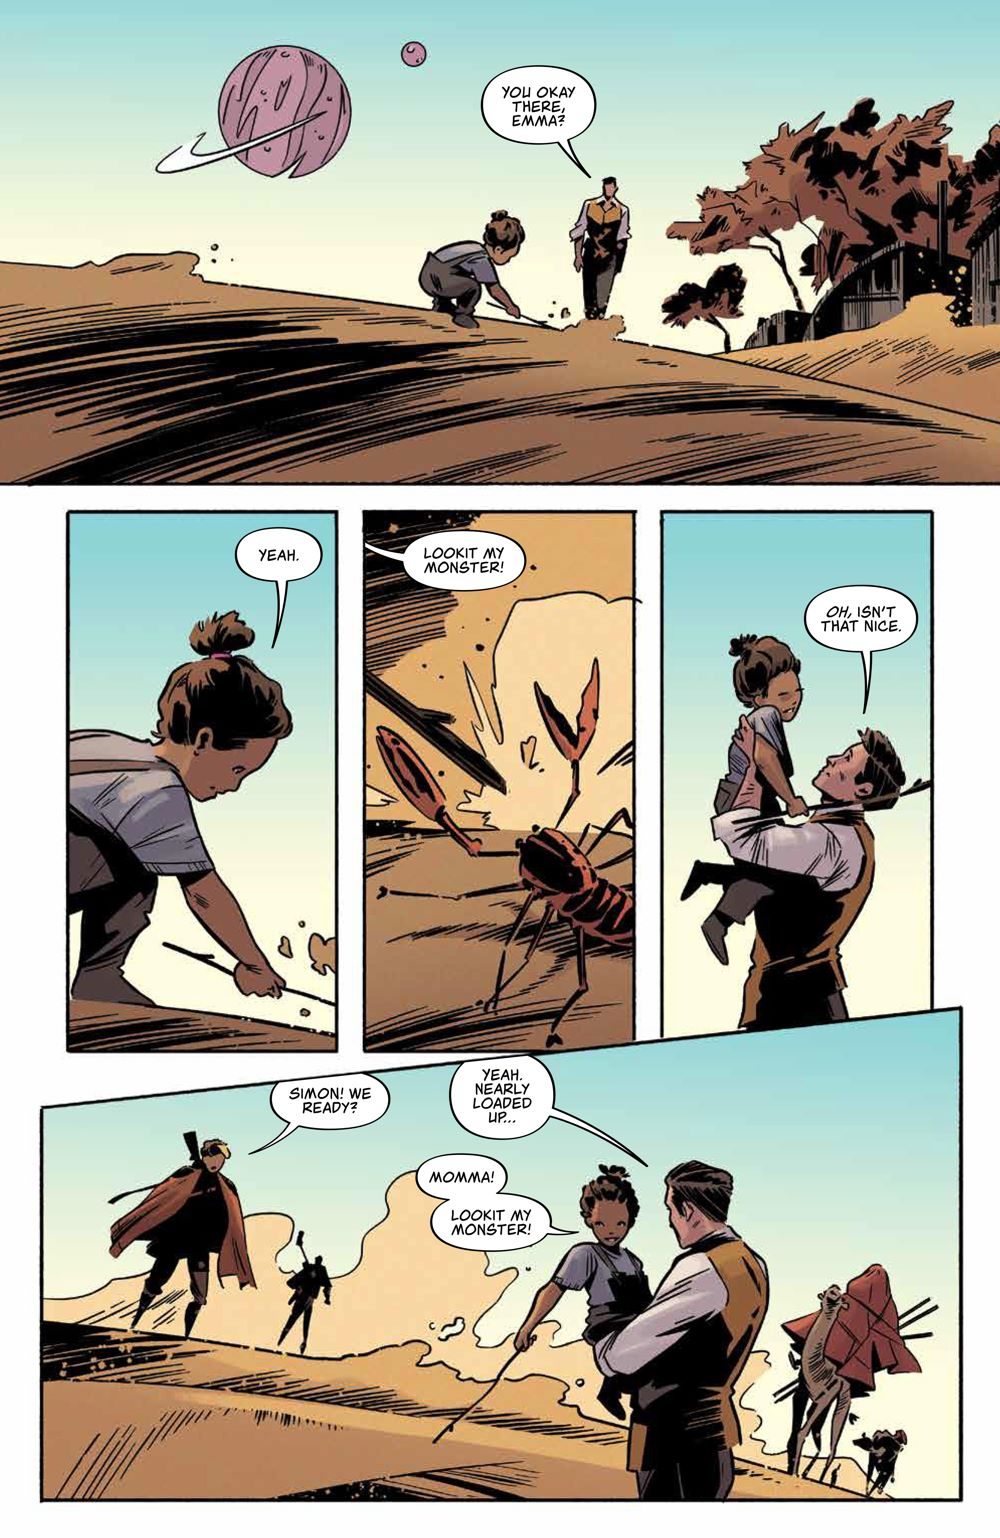 Firefly_ReturnToEarth_v1_HC_PRESS_18 ComicList Previews: FIREFLY RETURN TO THE EARTH THAT WAS VOLUME 1 HC